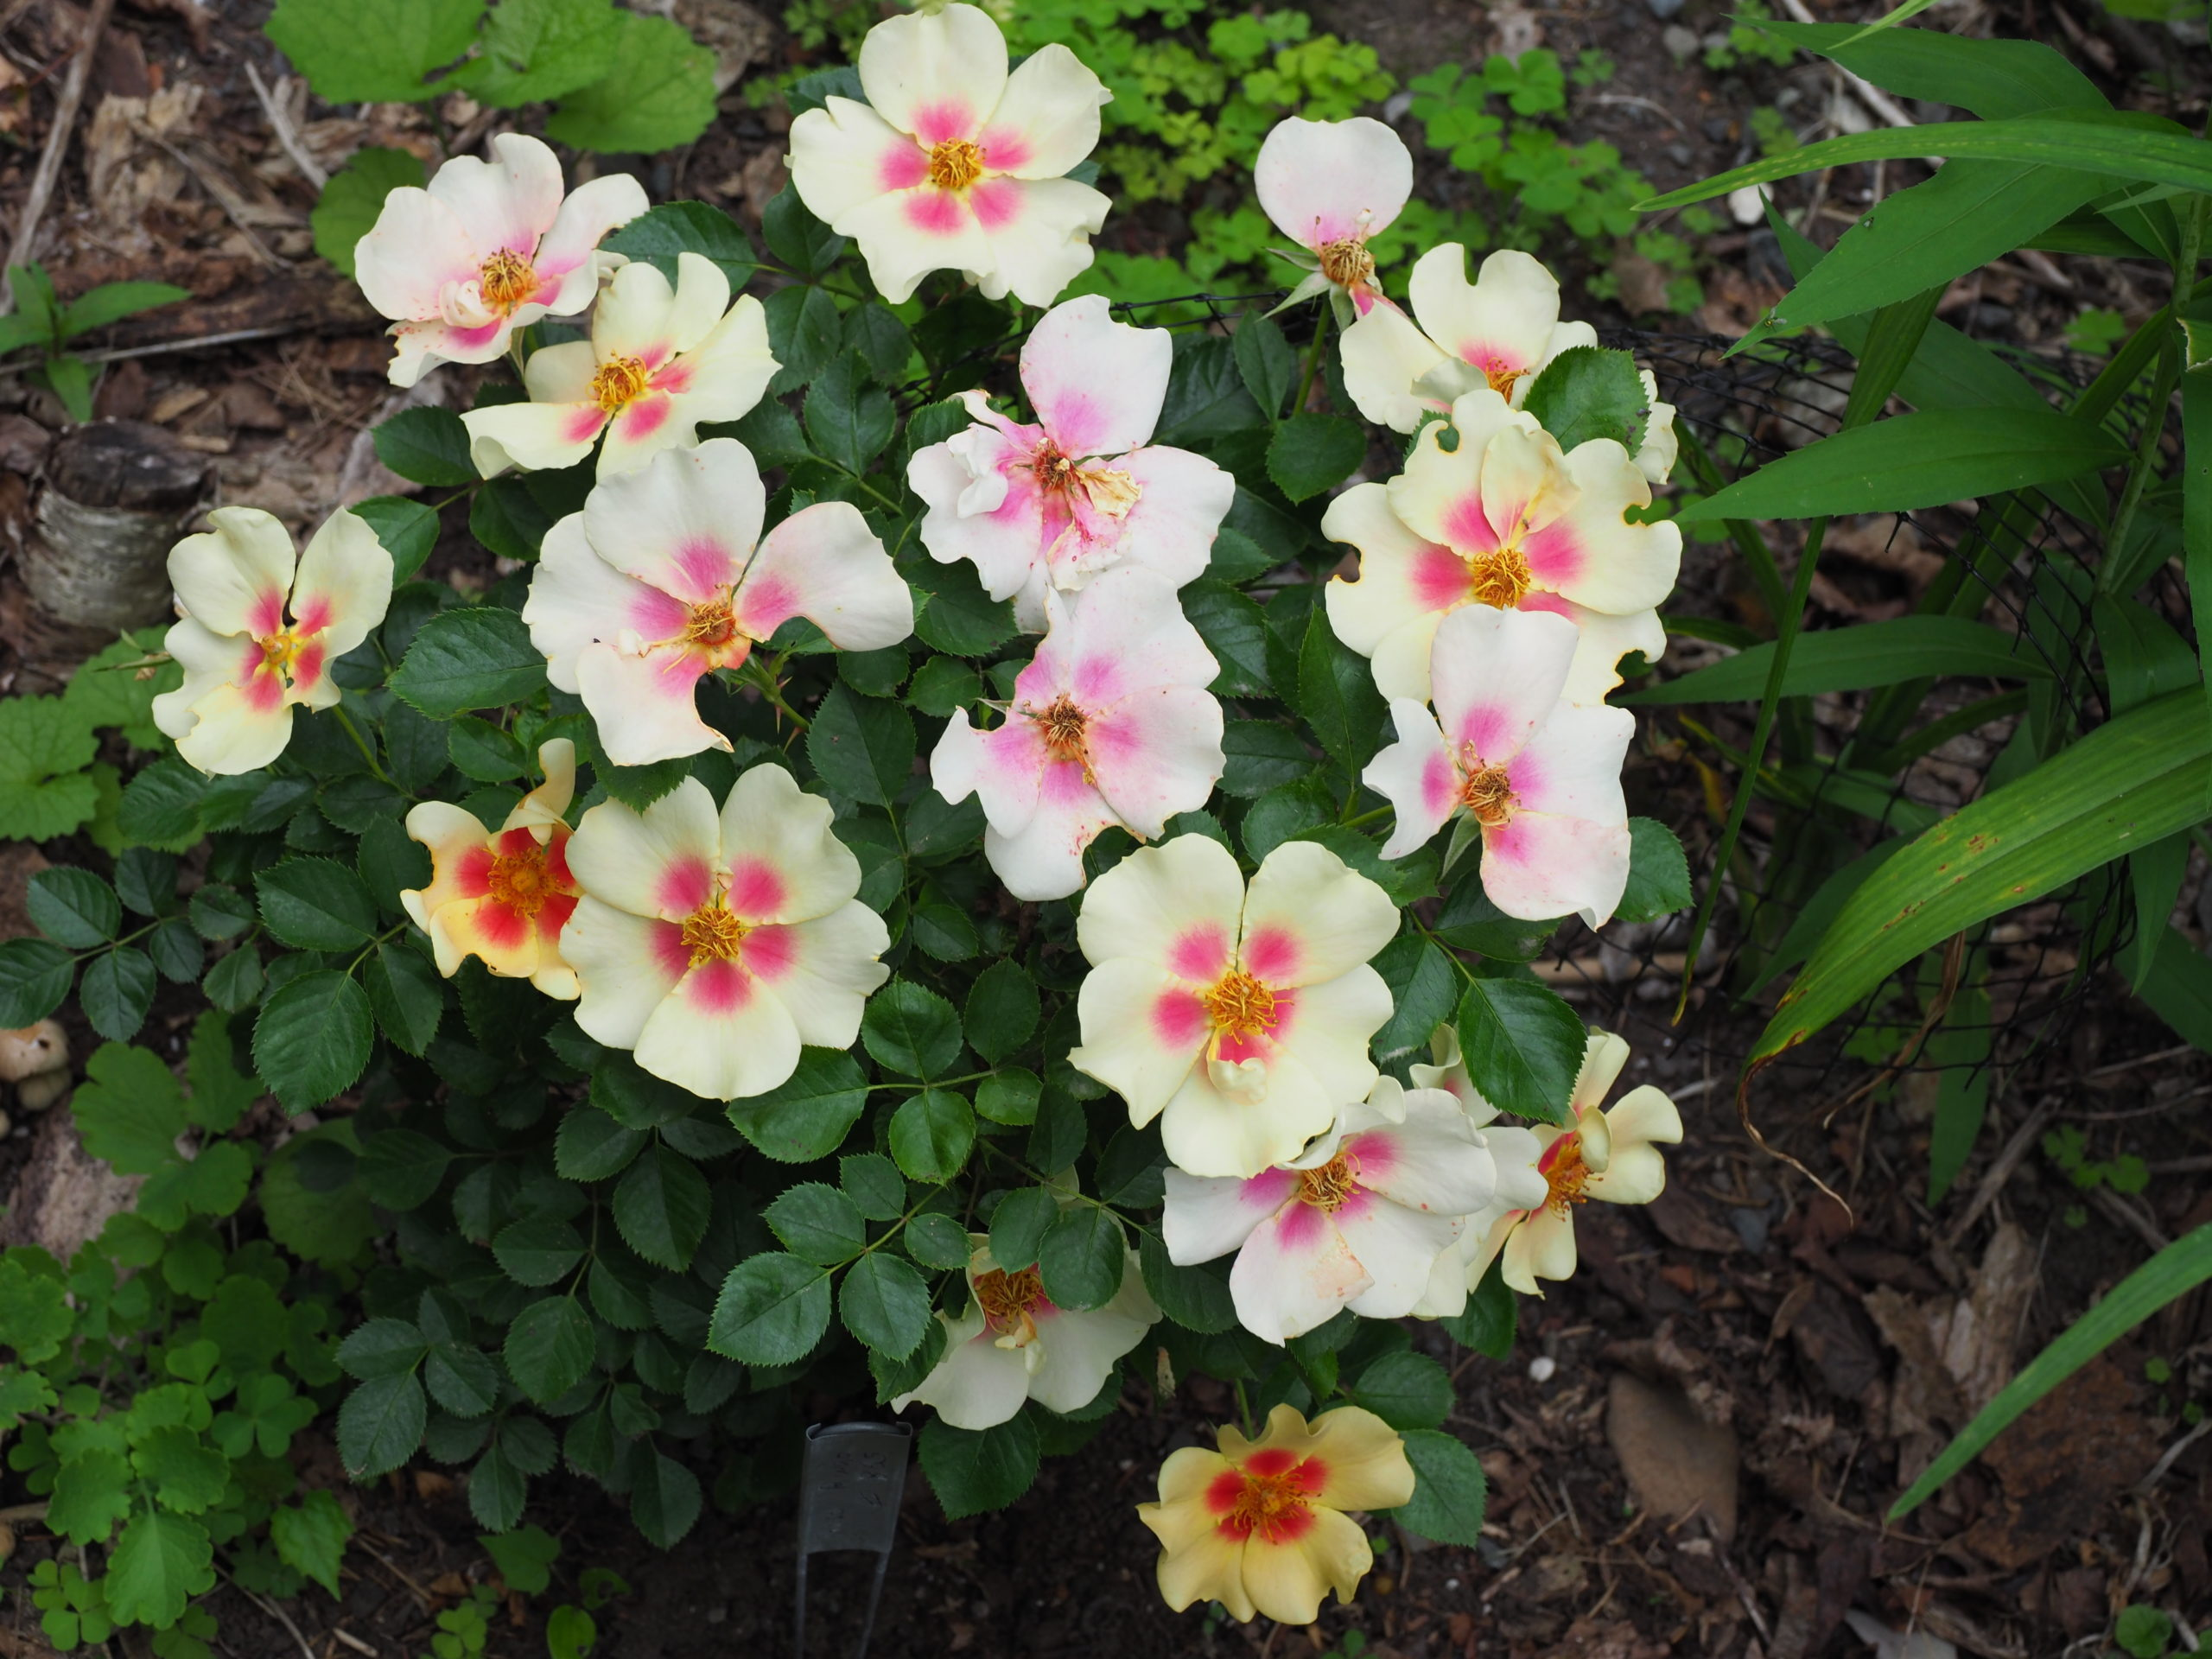 """Rose """"Ringo"""" is a new introduction with single flowers that open with yellow petals and reddish pink centers. As the flowers age their hue changes, but the plant continues to be covered with new flowers and buds. This plant is in year two of a trial, so stay tuned."""